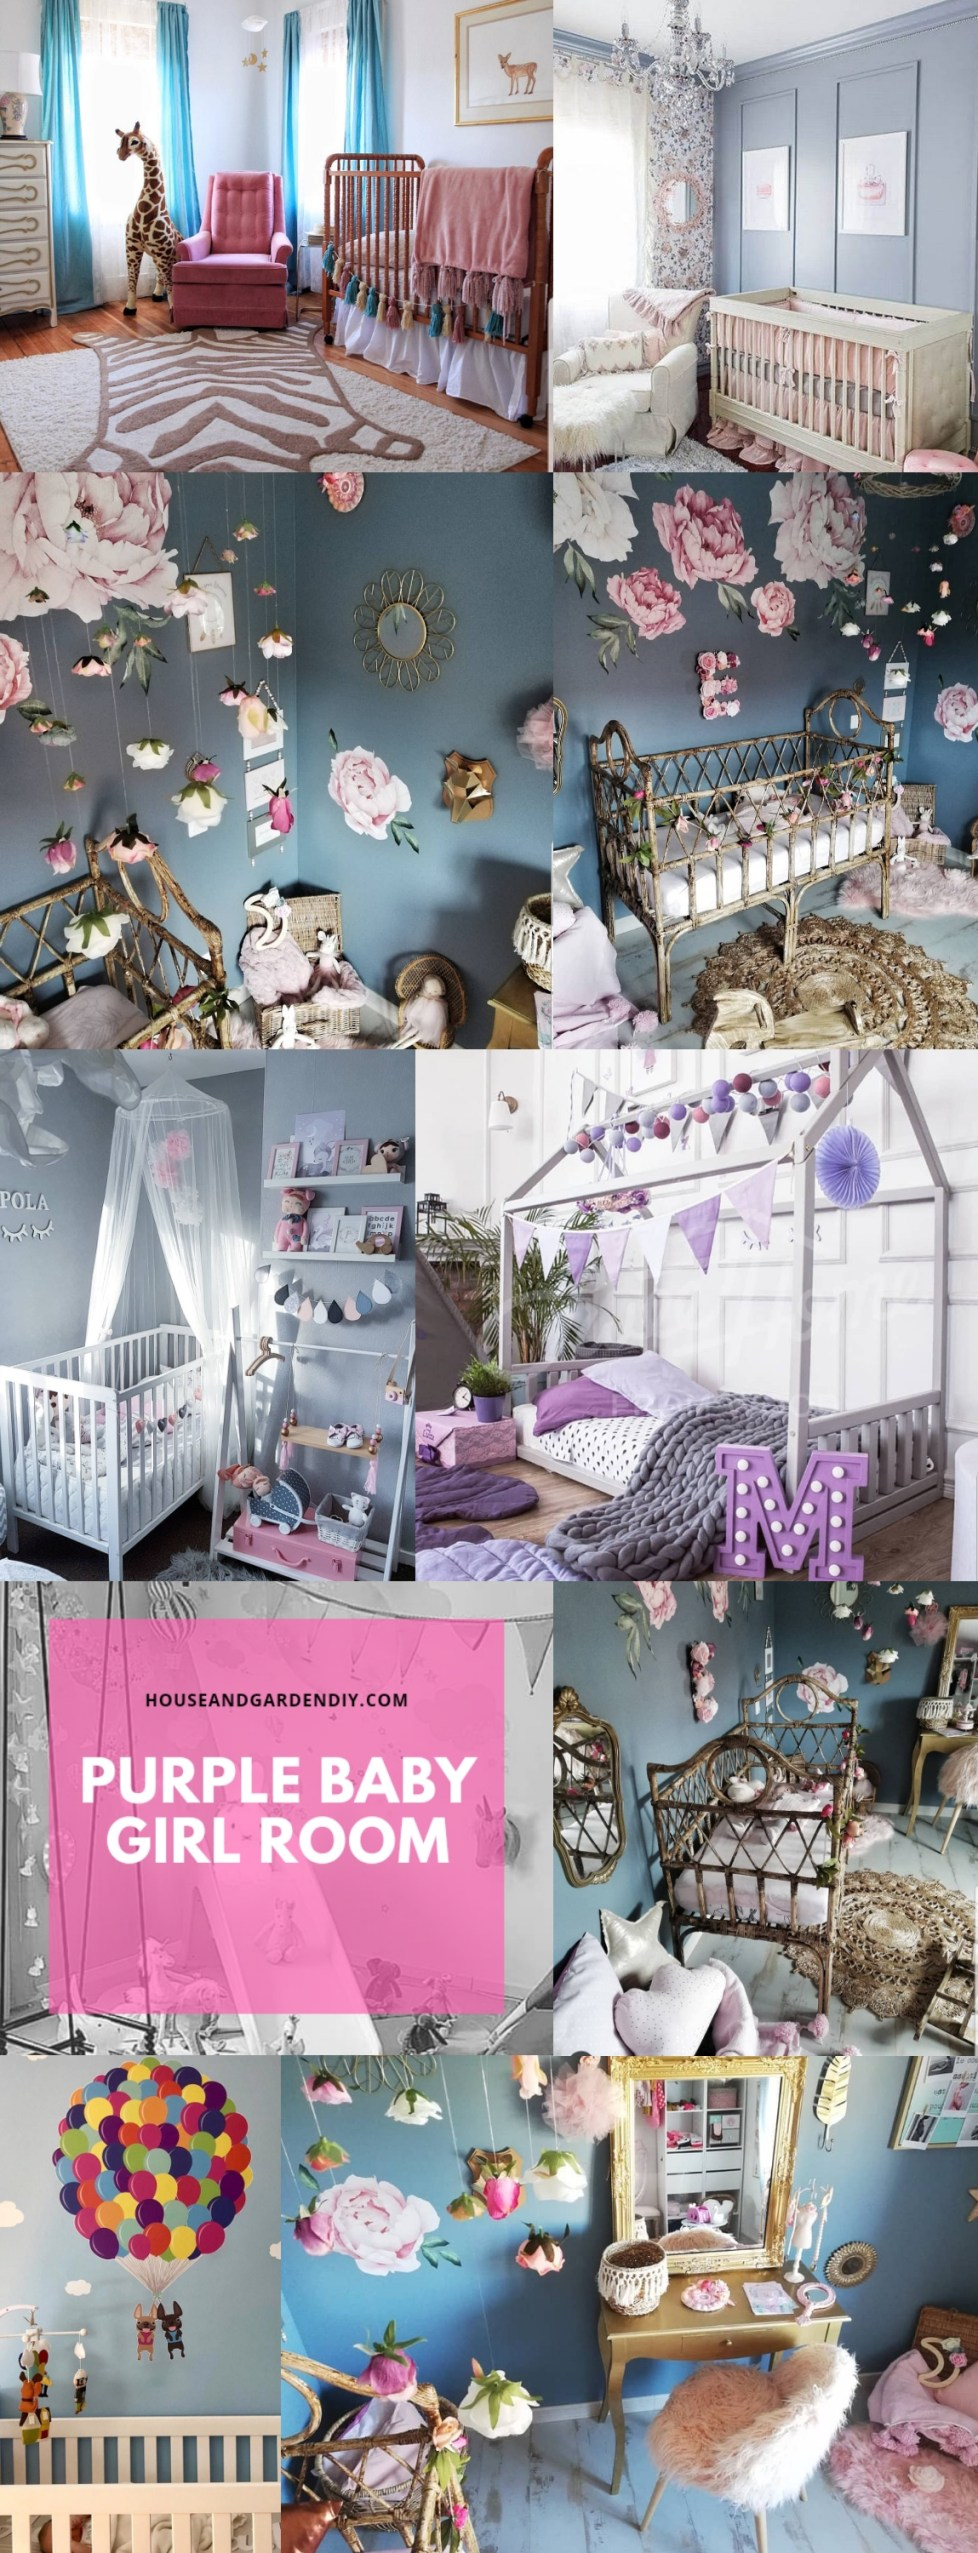 purple baby girl room